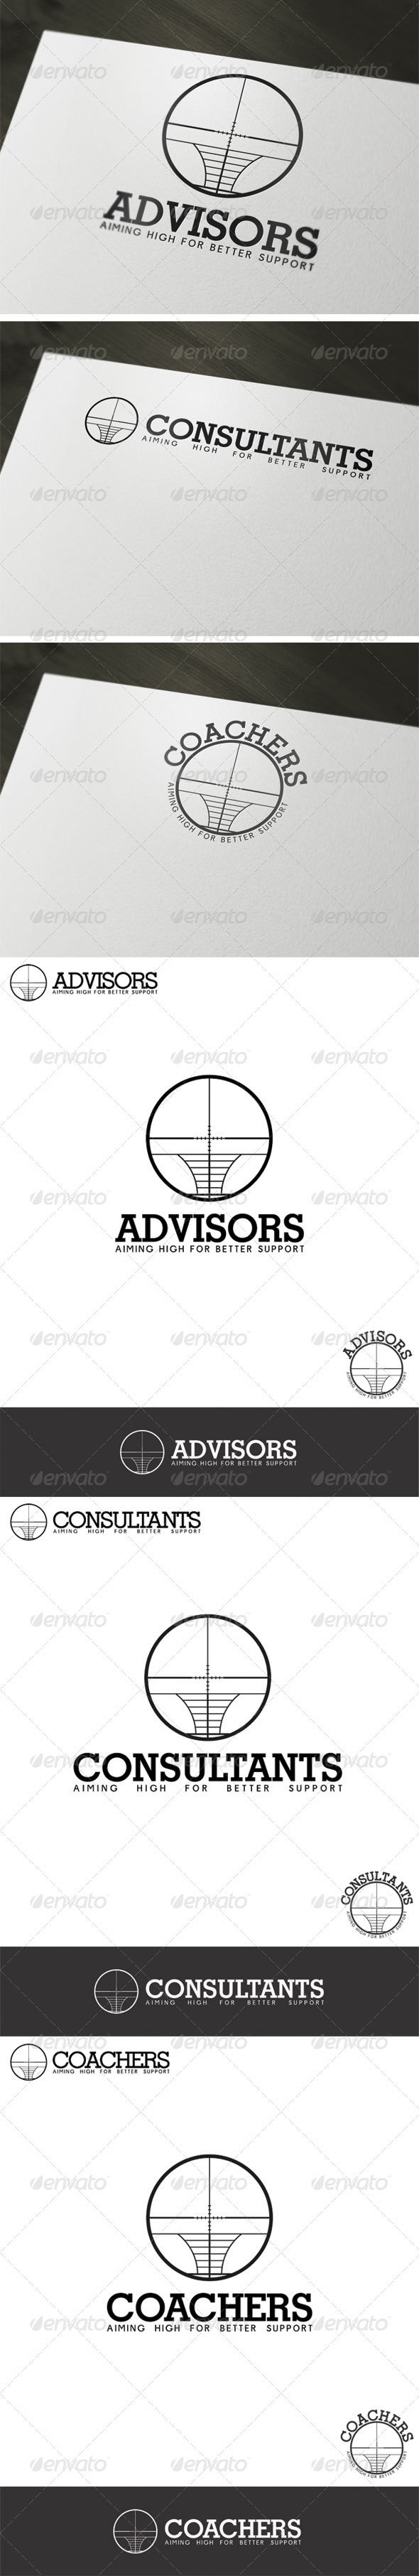 Advisors, Consultants, Coachers Logo Template - Vector Abstract